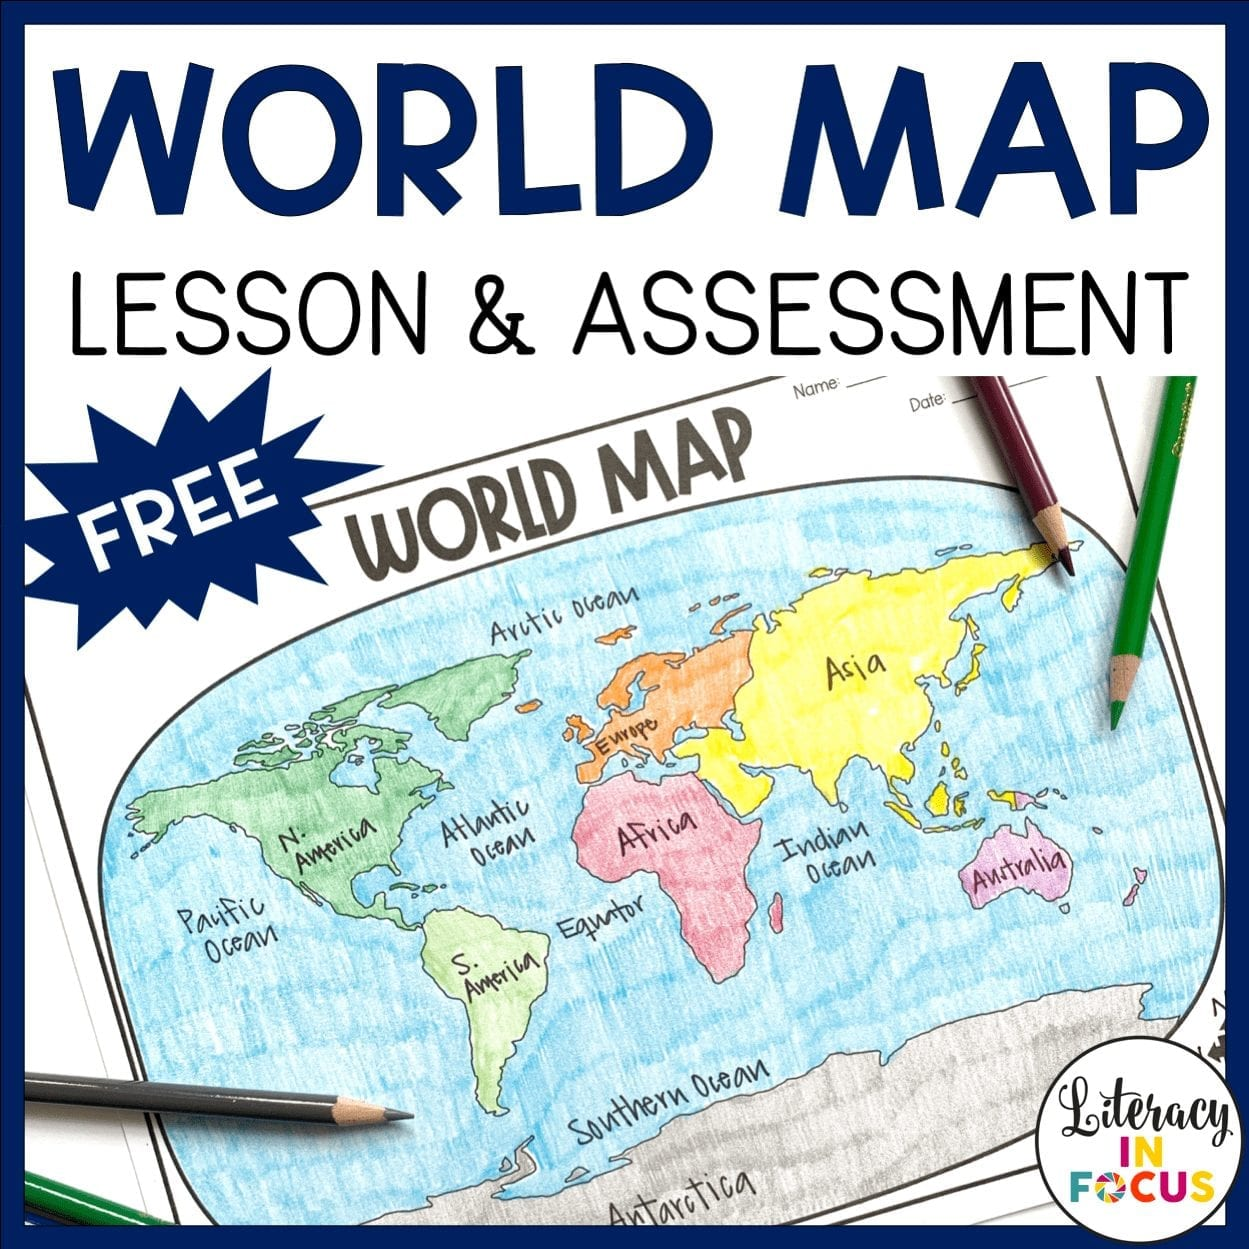 World Map Activity and Assessment